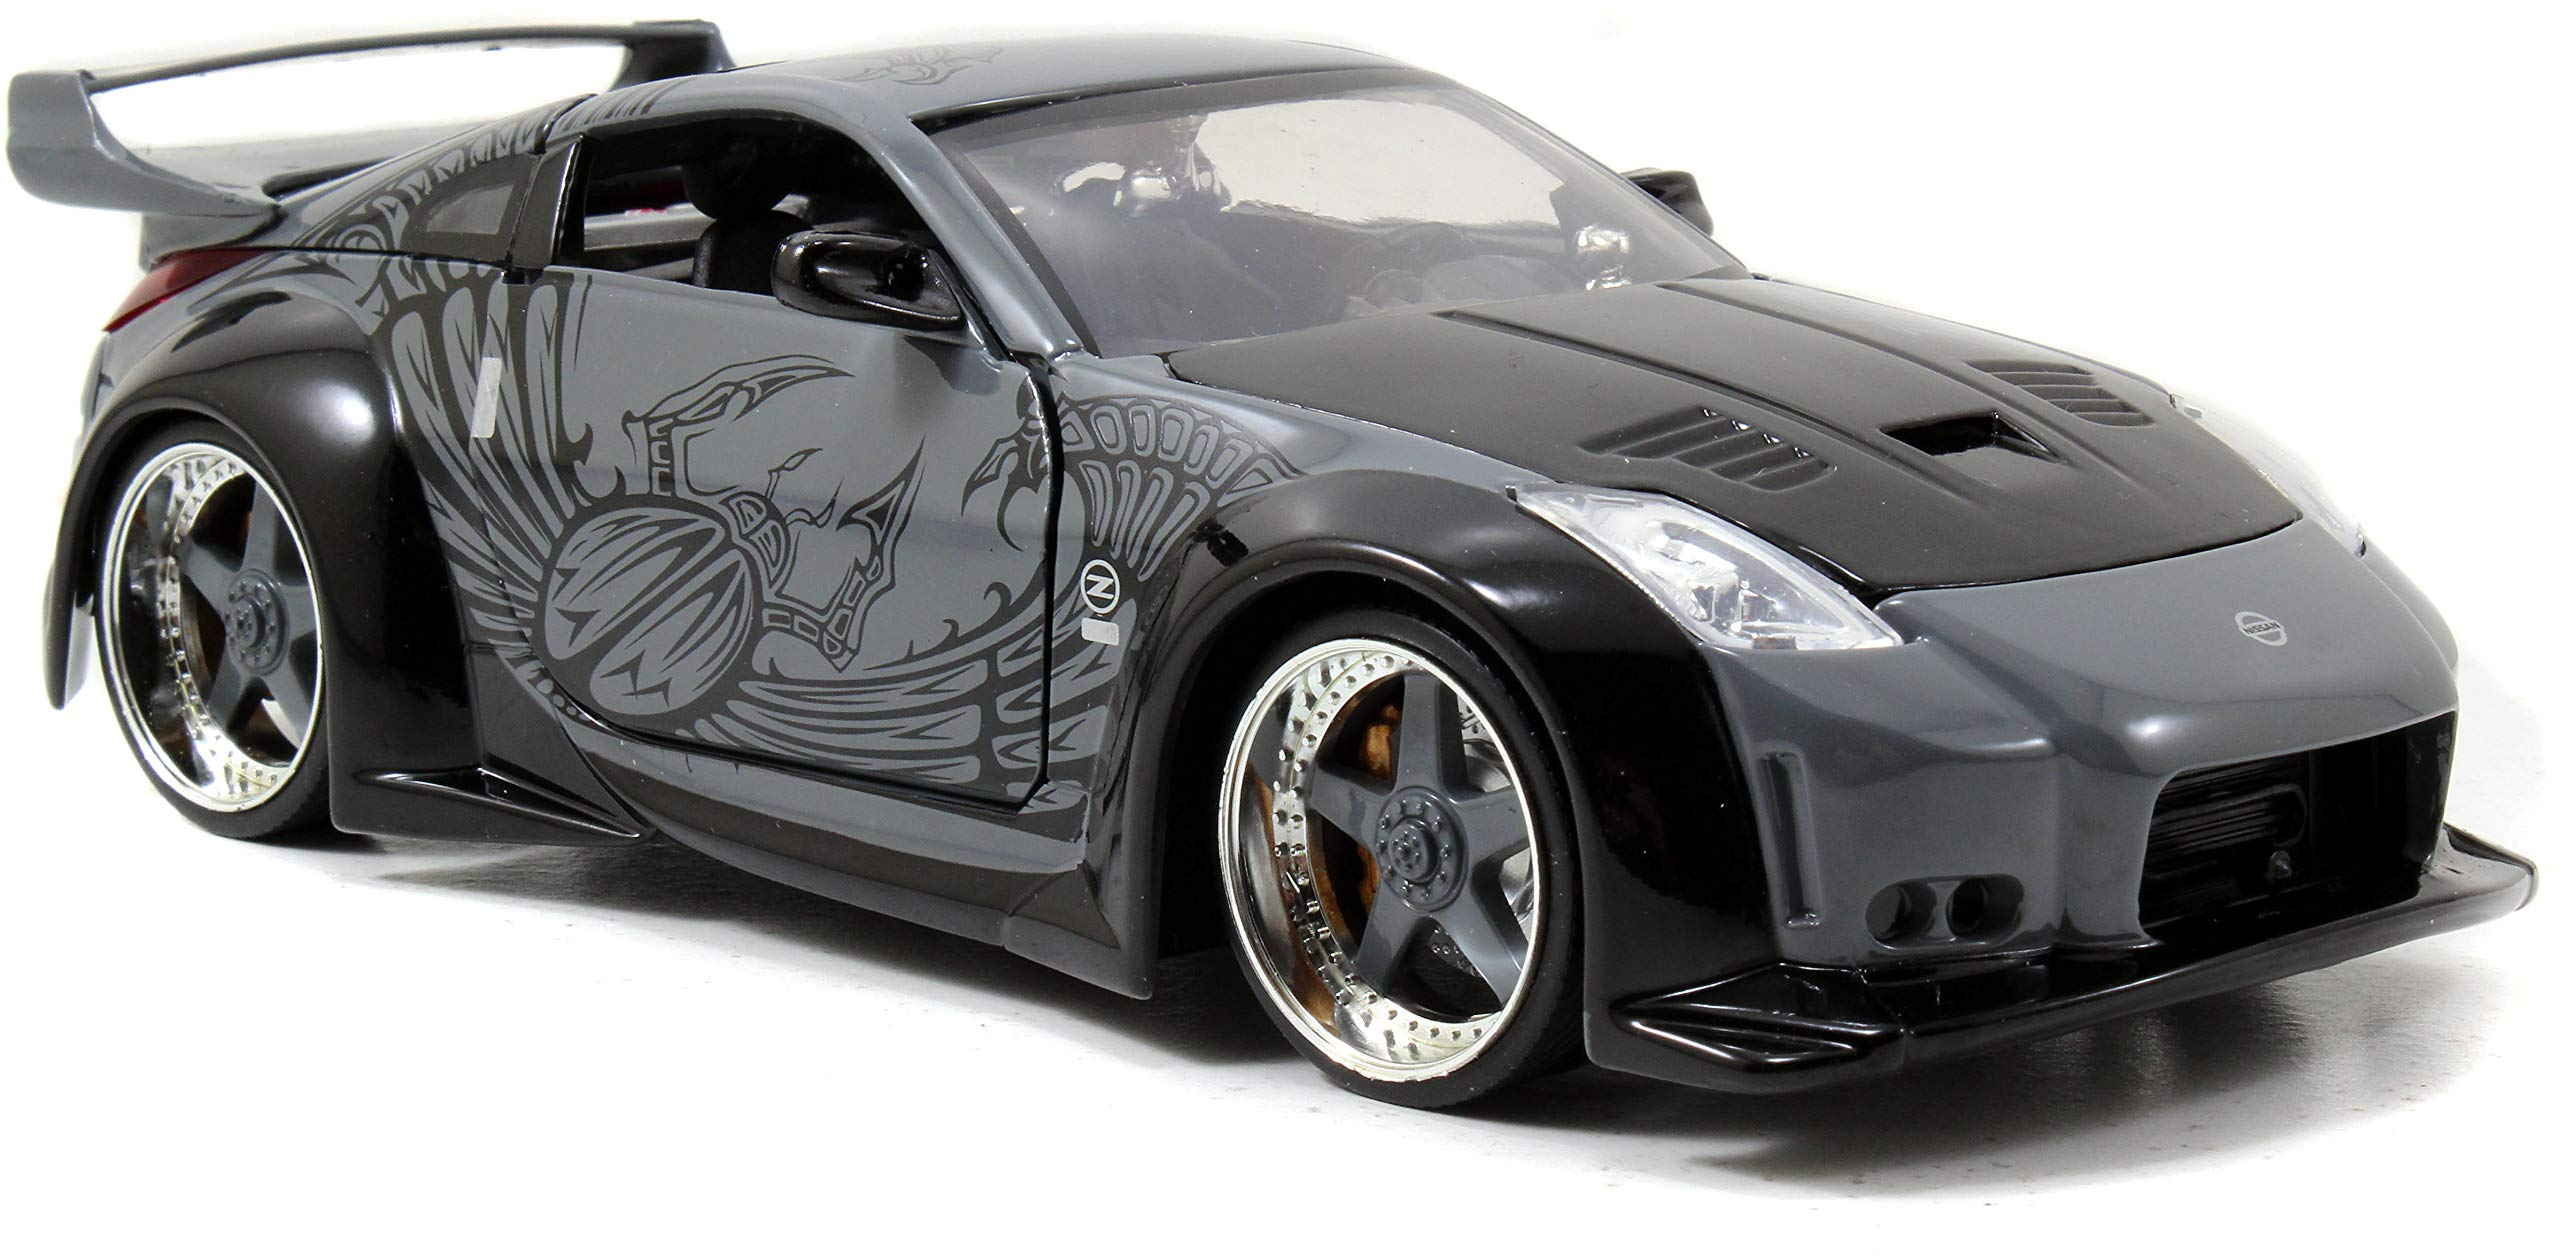 Jada Toys Fast & Furious 1:24 D.K.'s Nissan 350Z Die-cast Car, Toys for Kids and Adults, Grey and Black (97172)